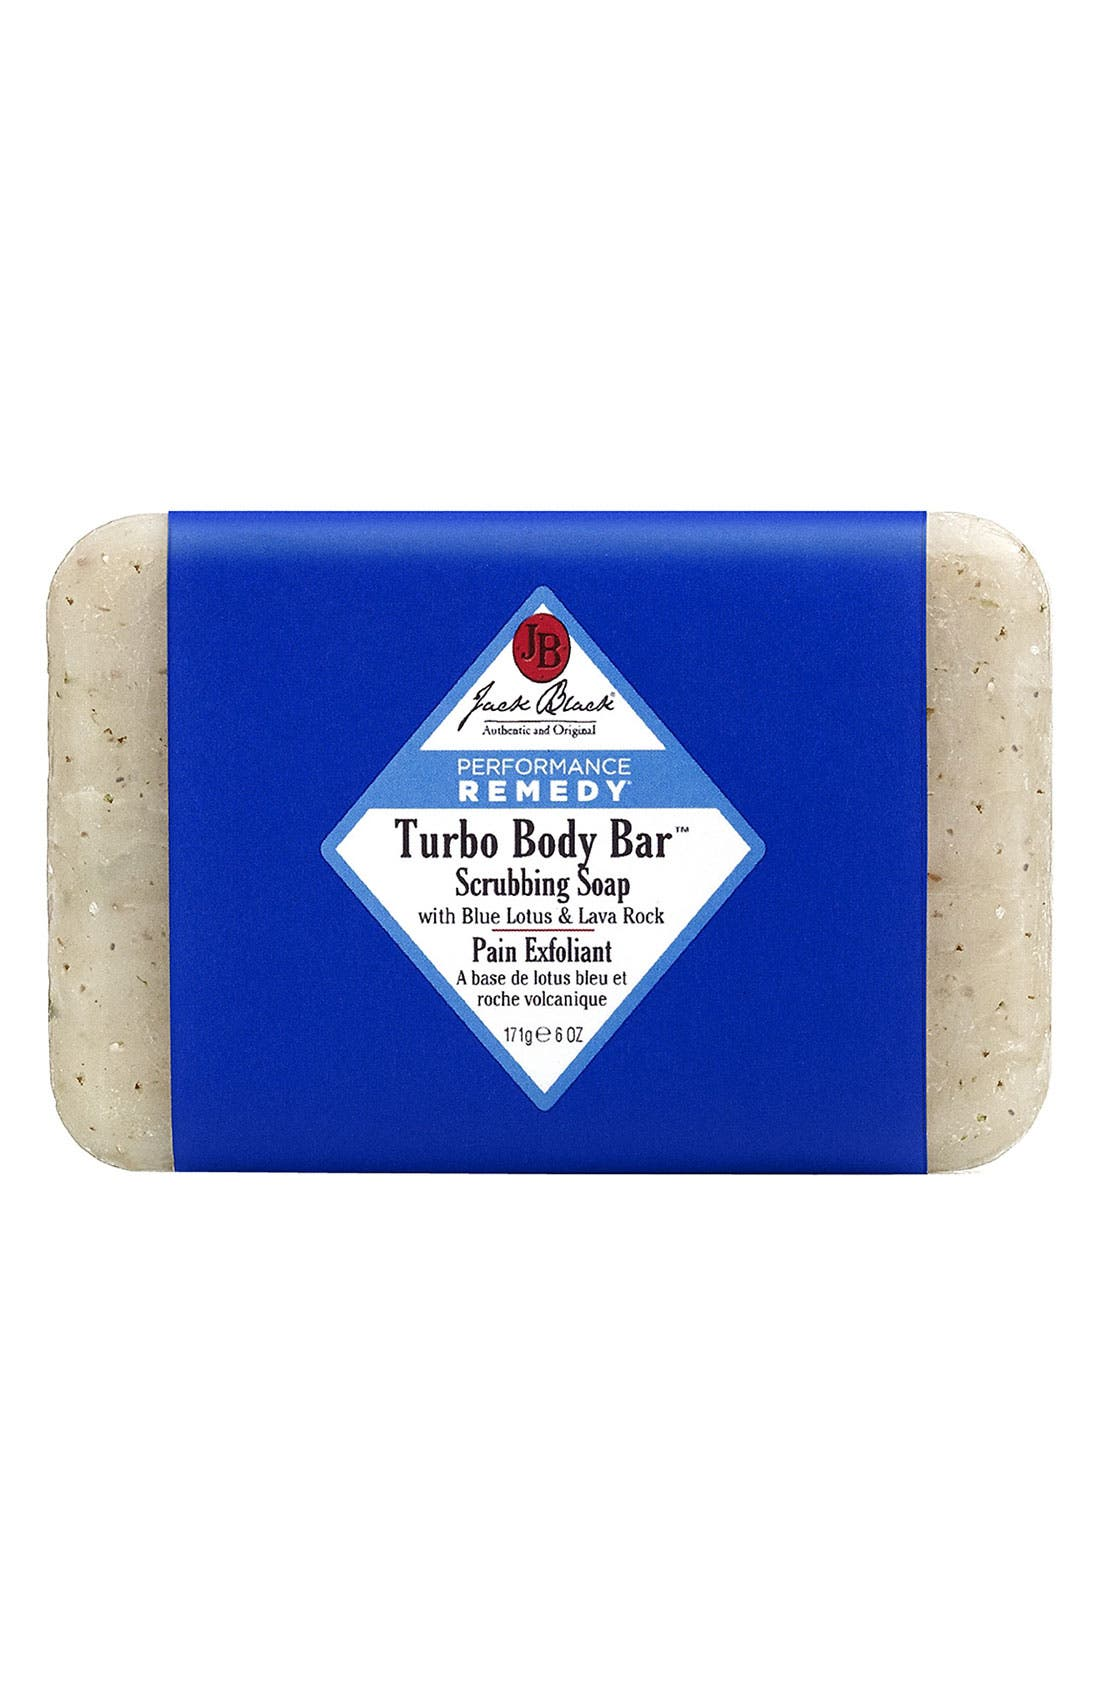 Jack Black 'Turbo Body Bar' Scrubbing Soap